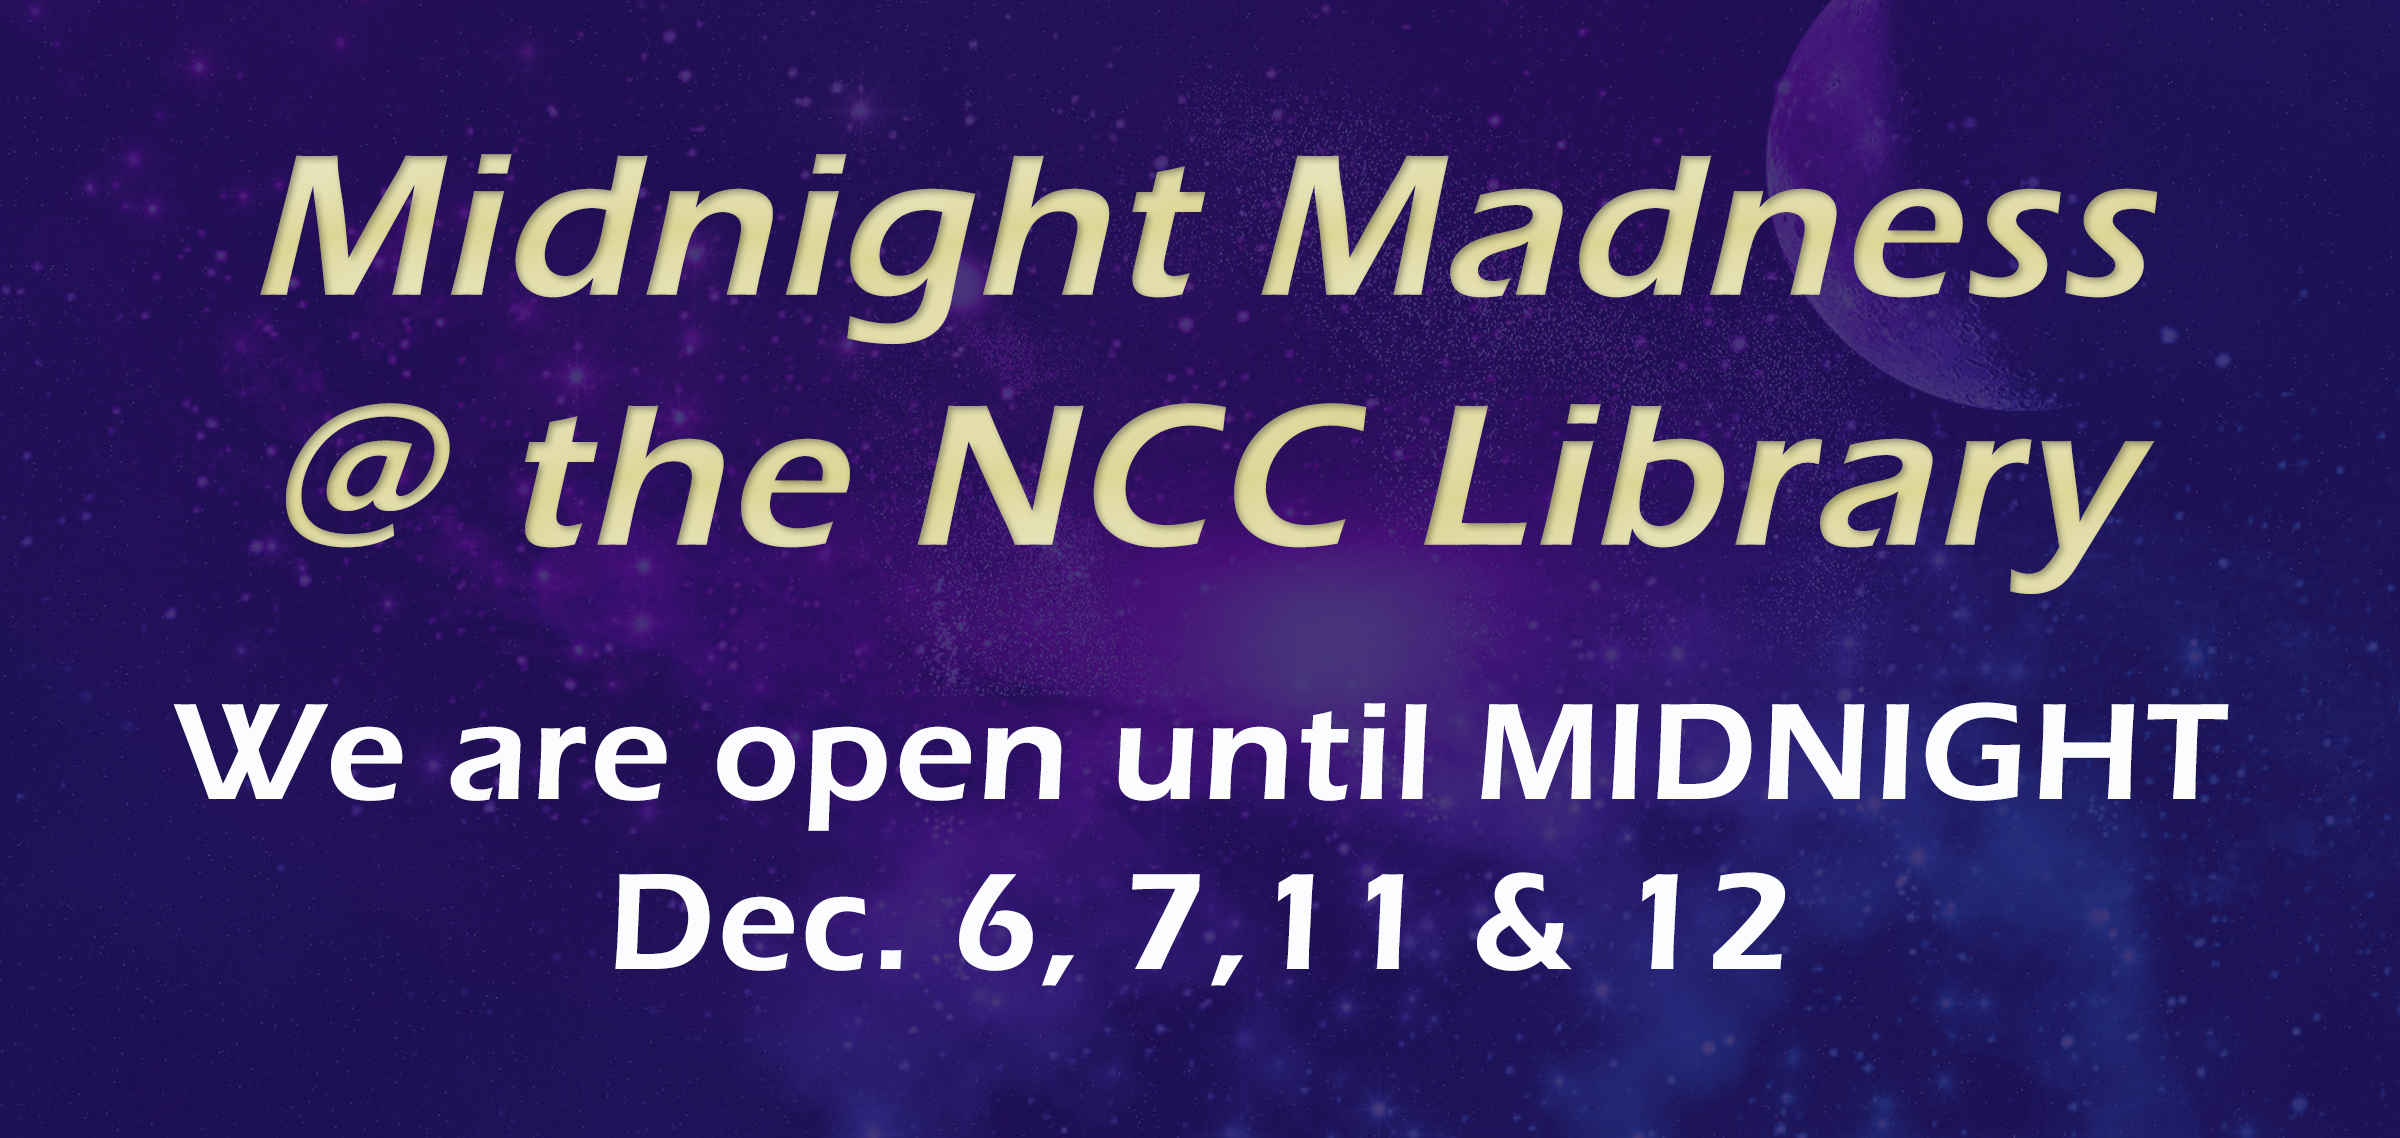 Library is open to midnight Dec. 6,7,11 &12